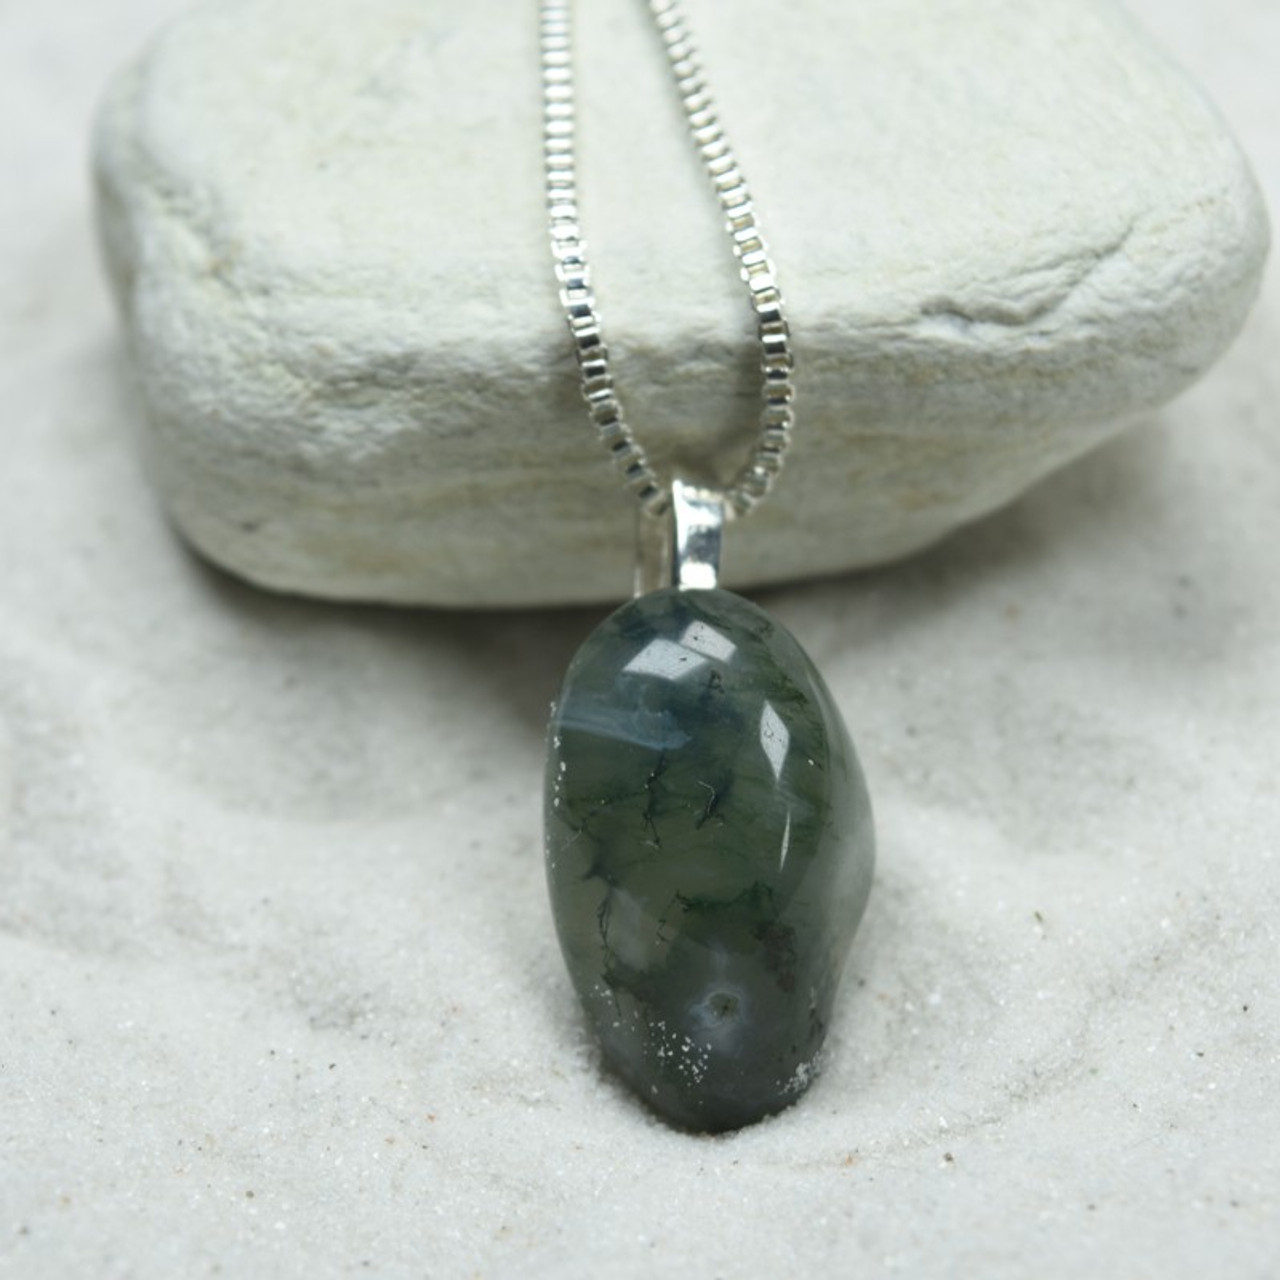 Tumbled Green Moss Agate Pendant